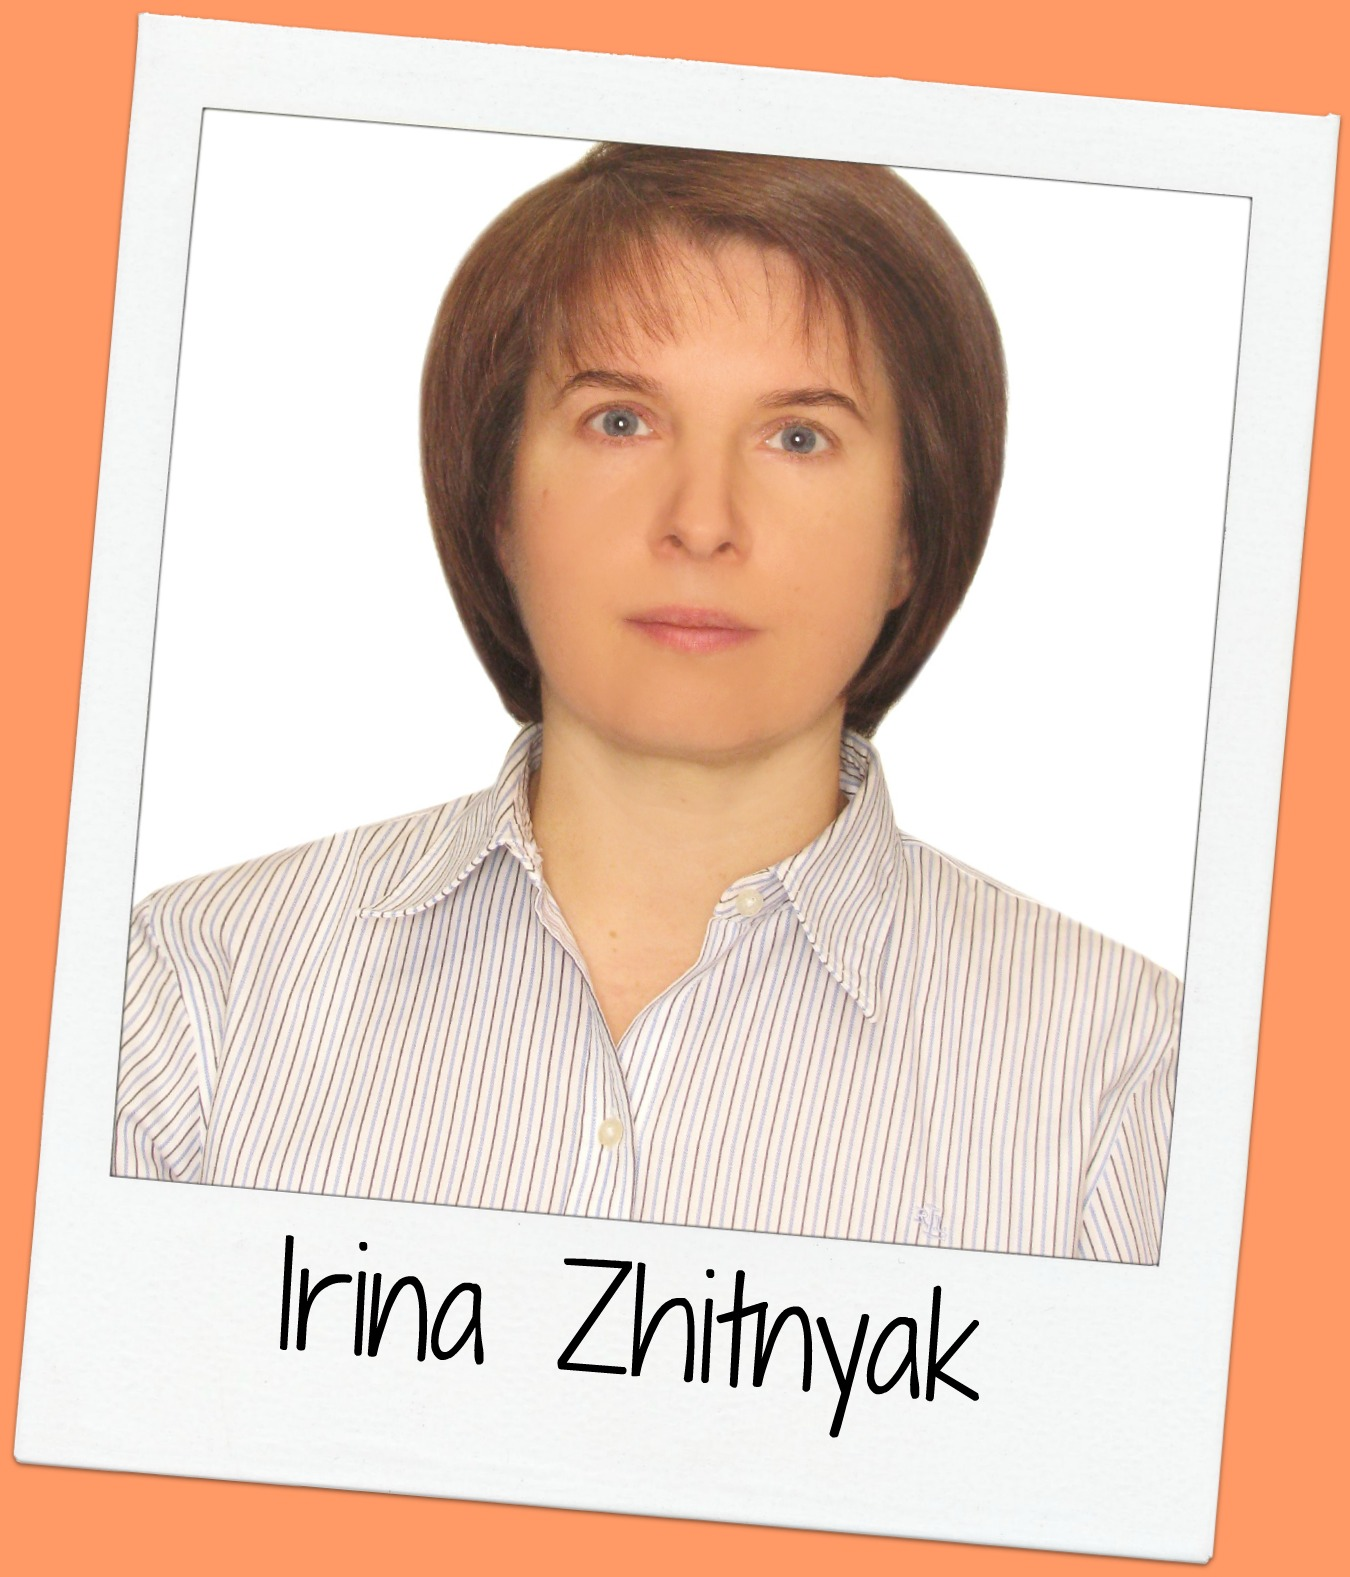 Irina considers herself a lucky individual to combine passion for math with day to day job as Finance Director